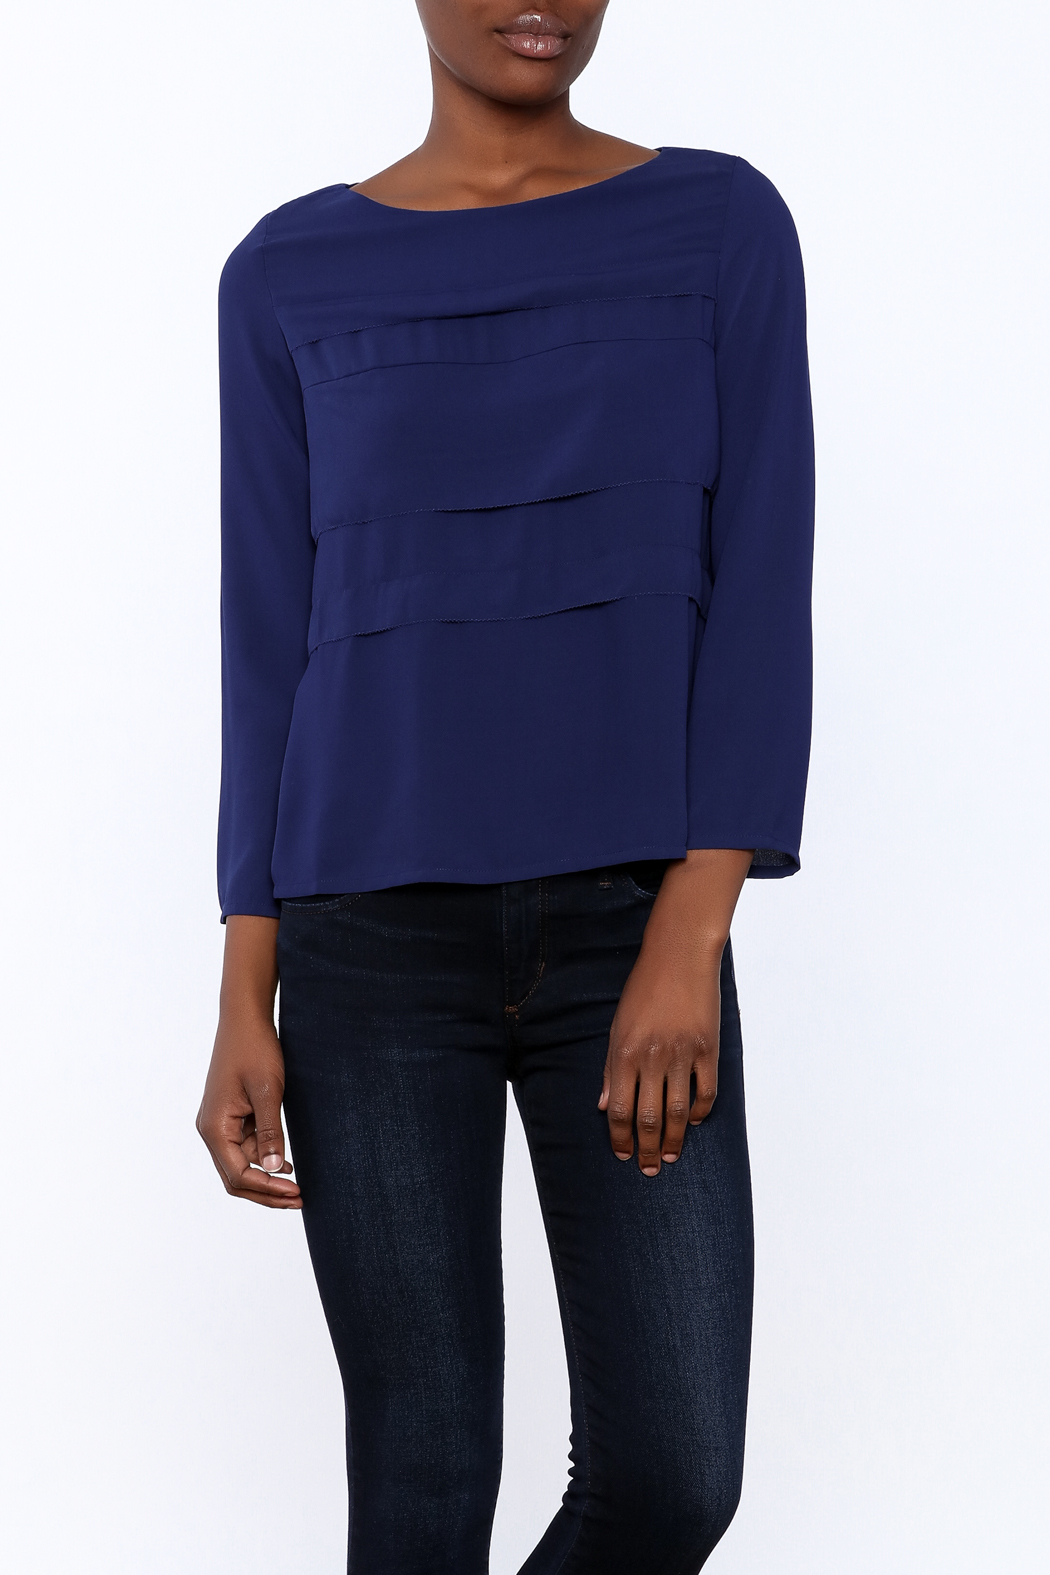 FRNCH Cobalt Tiered Top - Main Image